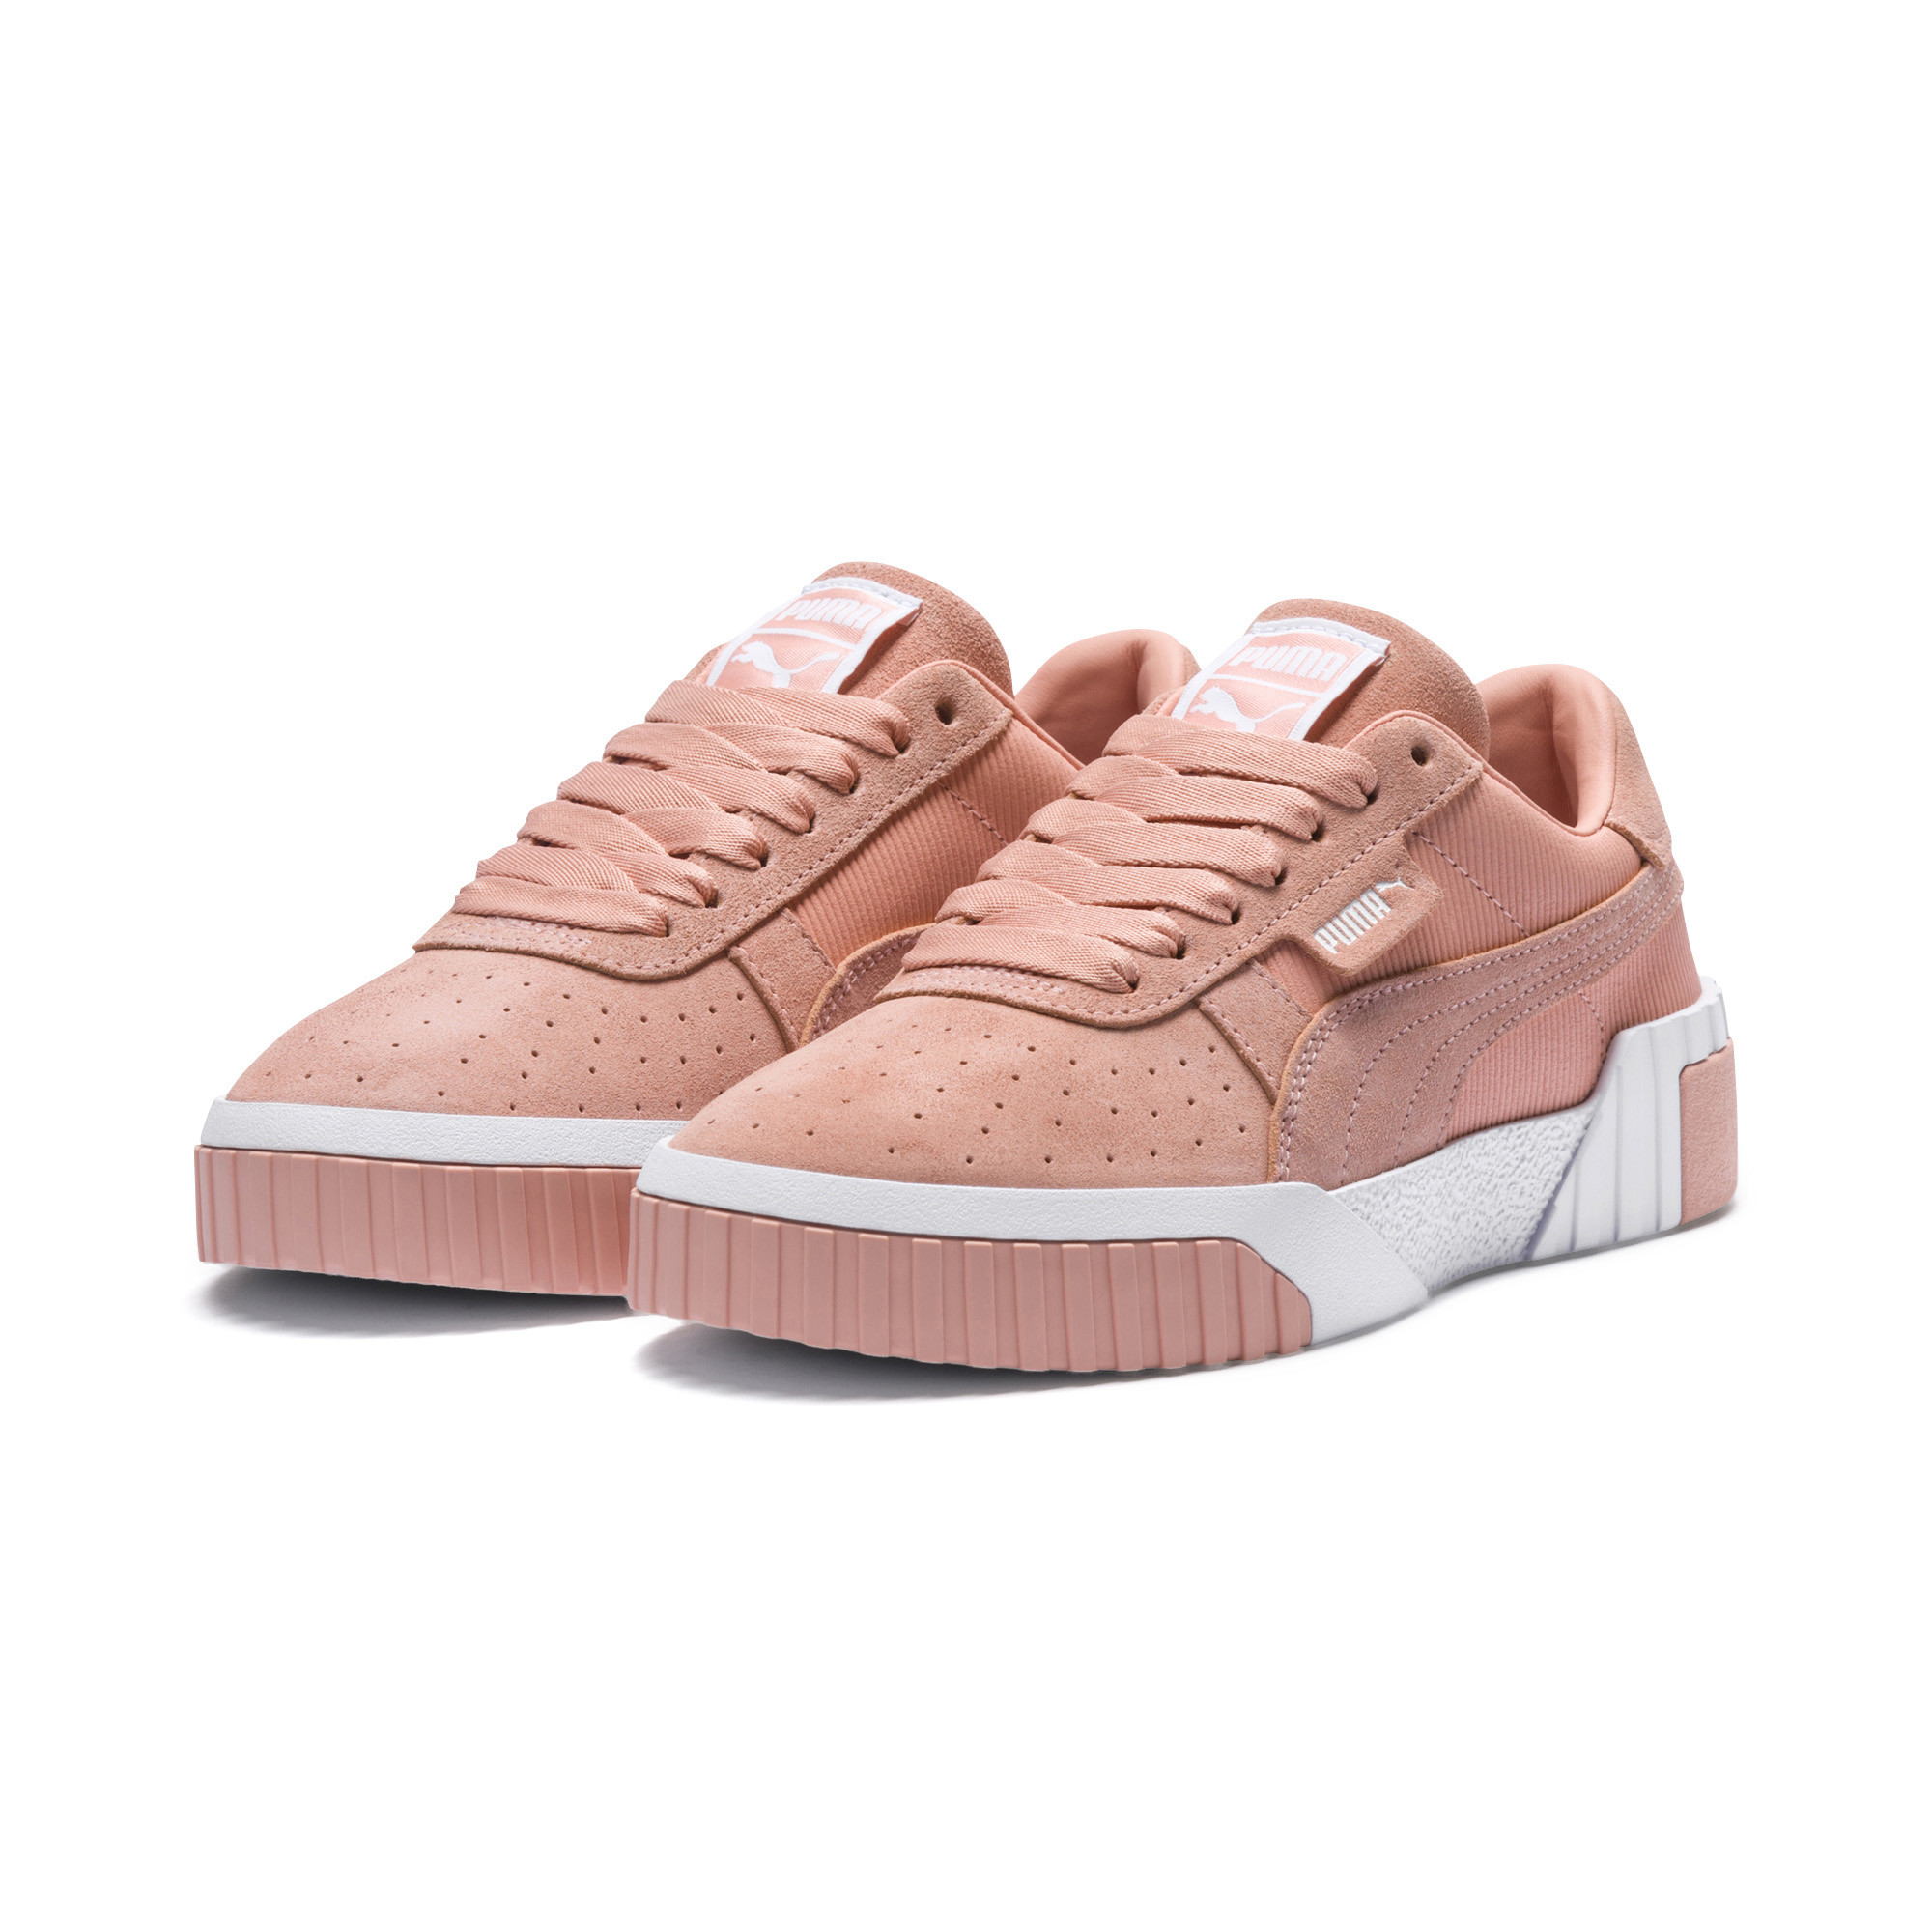 Image Puma Cali Palm Springs Women's Sneakers #3